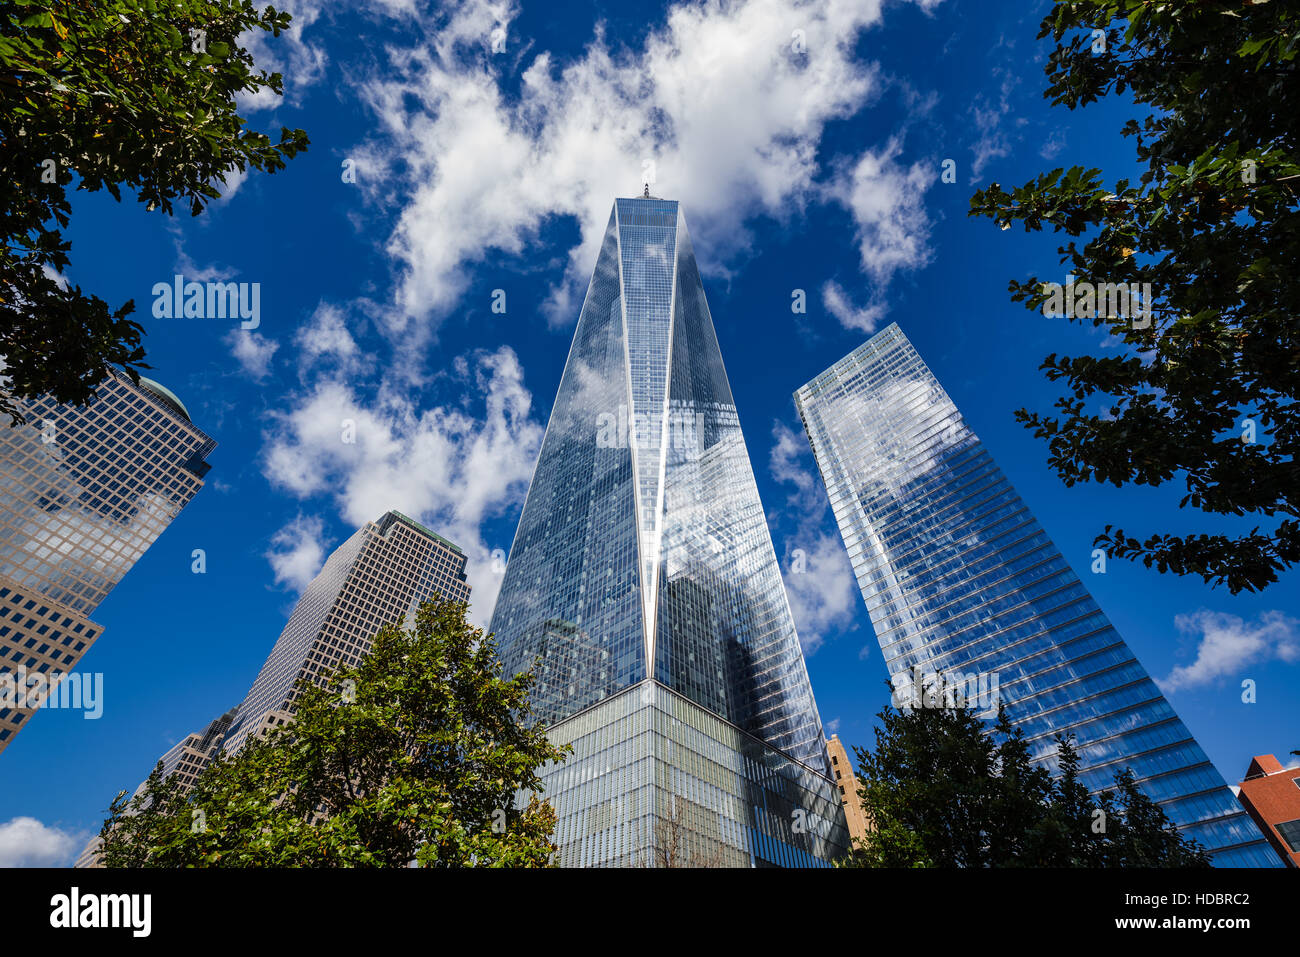 Eins und sieben World Trade Center Wolkenkratzer mit einer blauen Morgenhimmel. Manhattan, New York City Stockbild